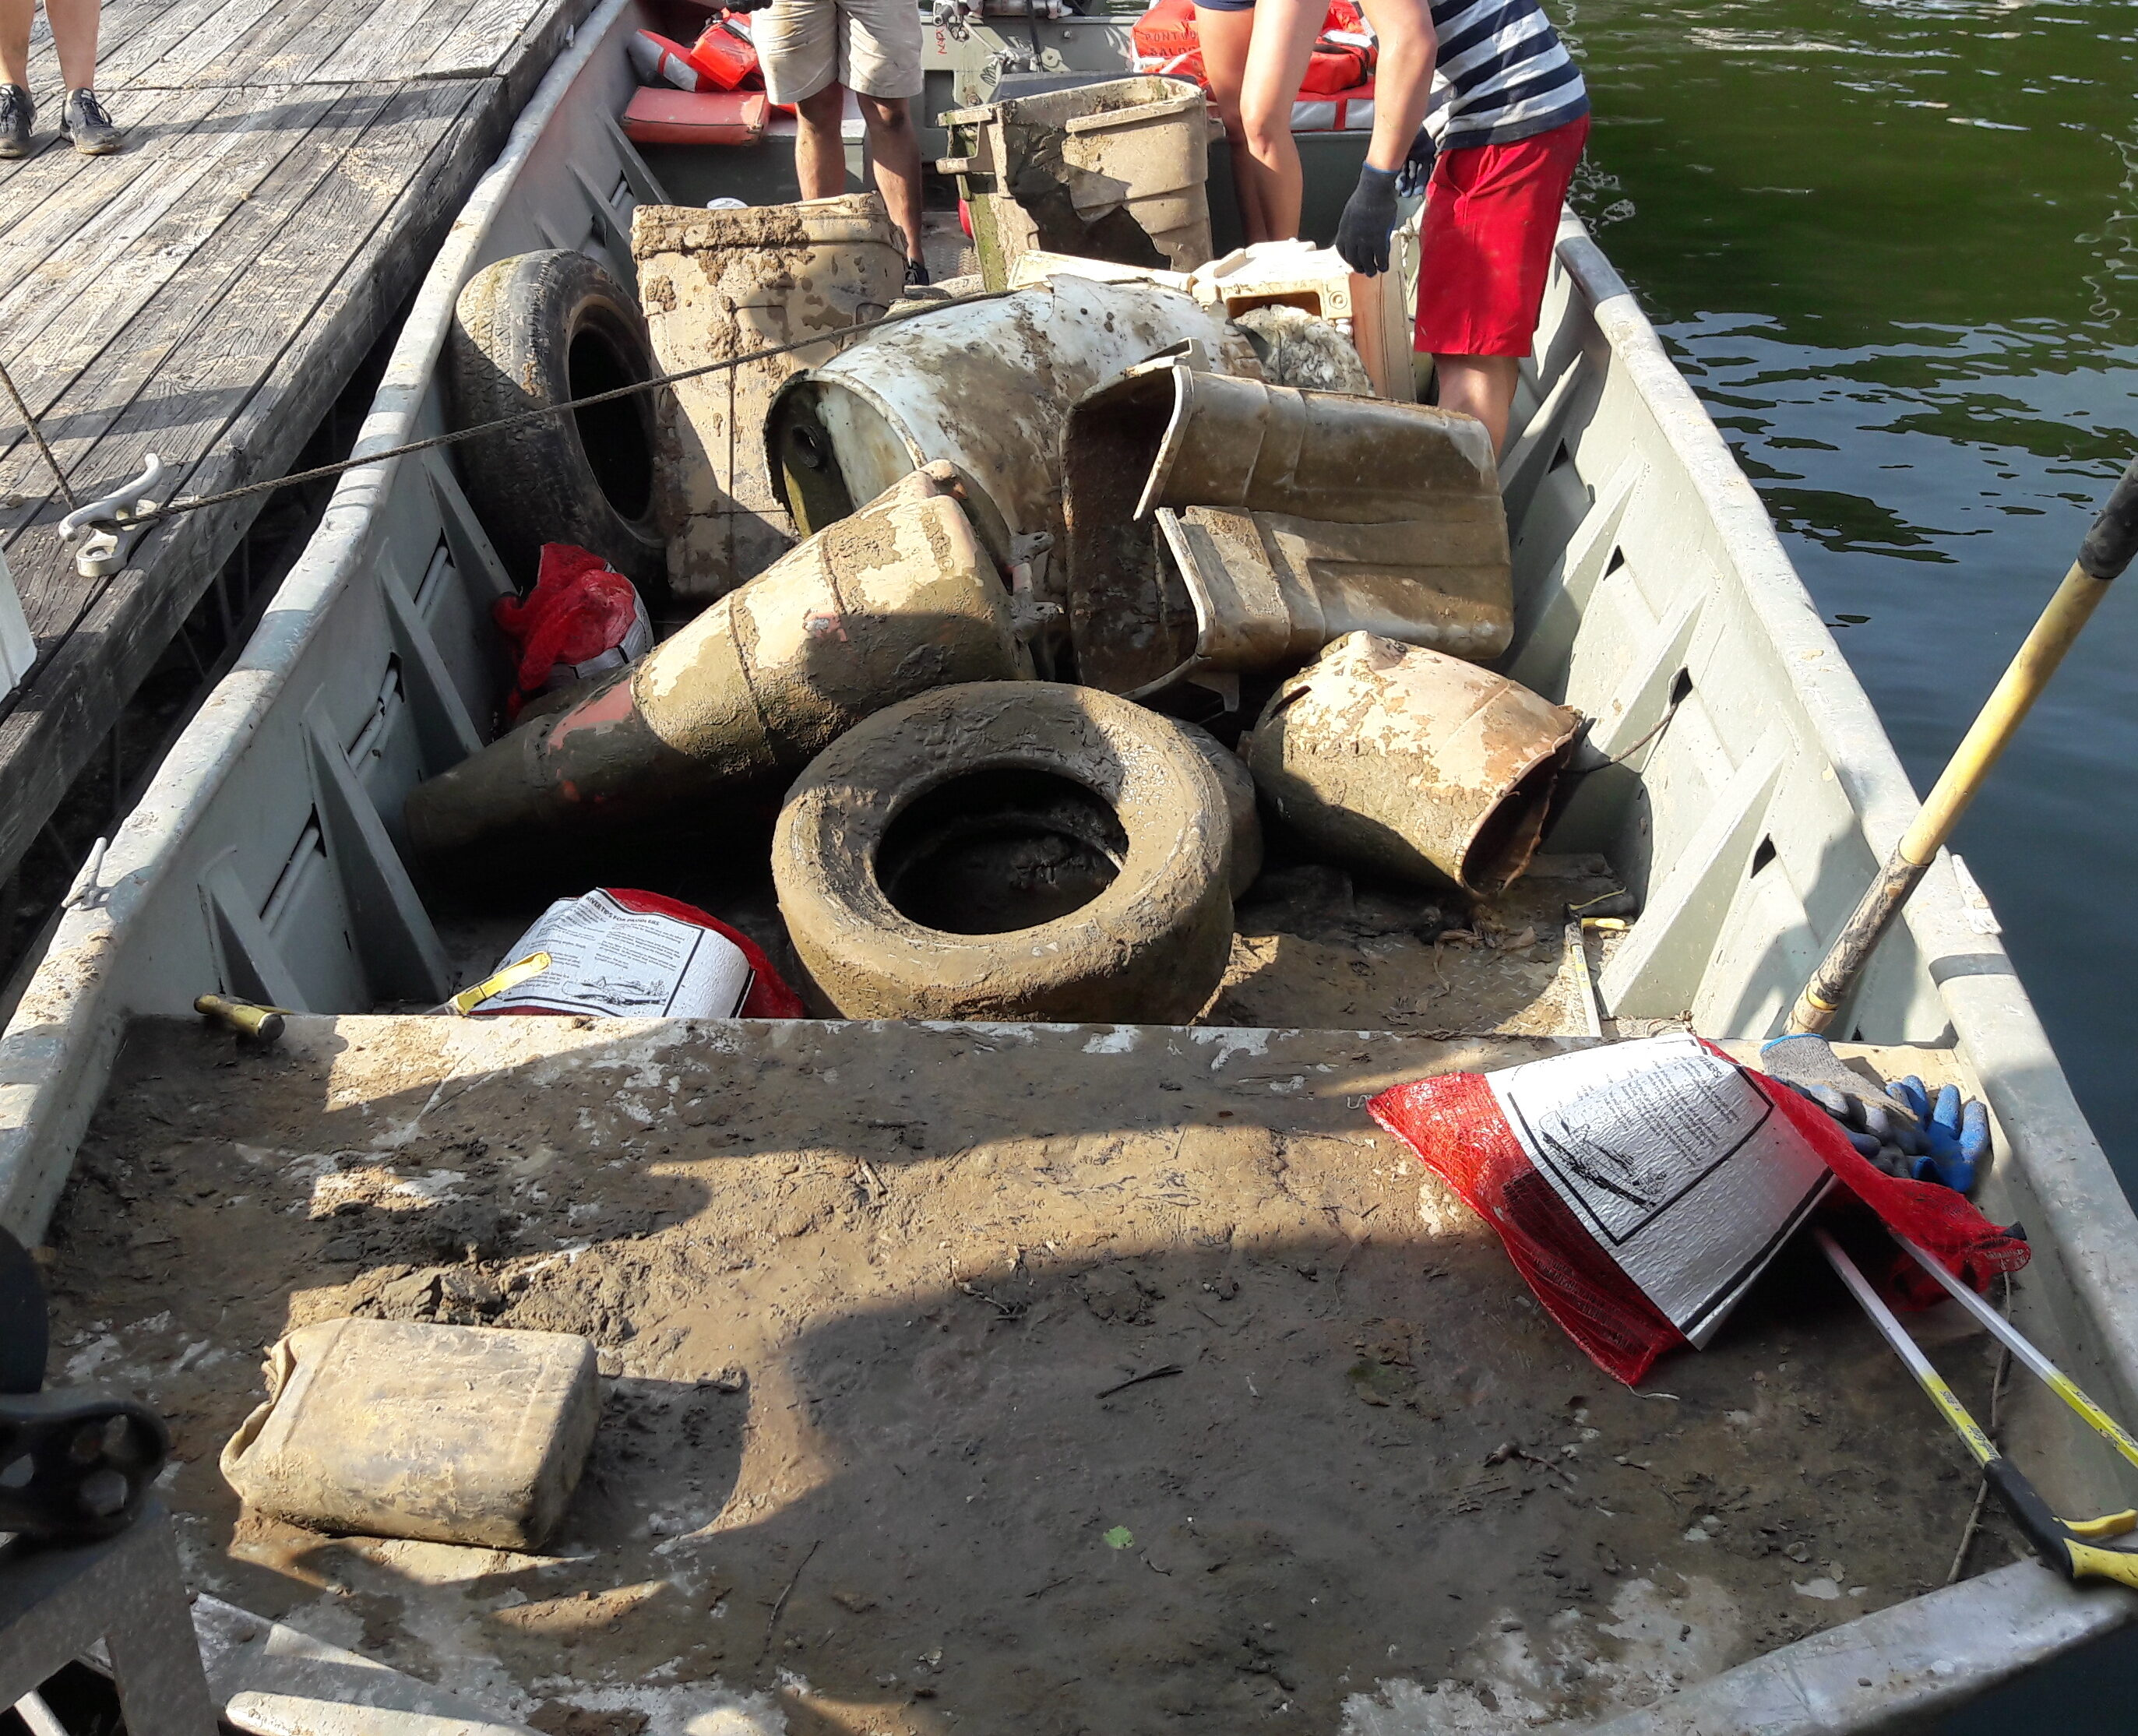 Volunteers are unloading the boat at the dock